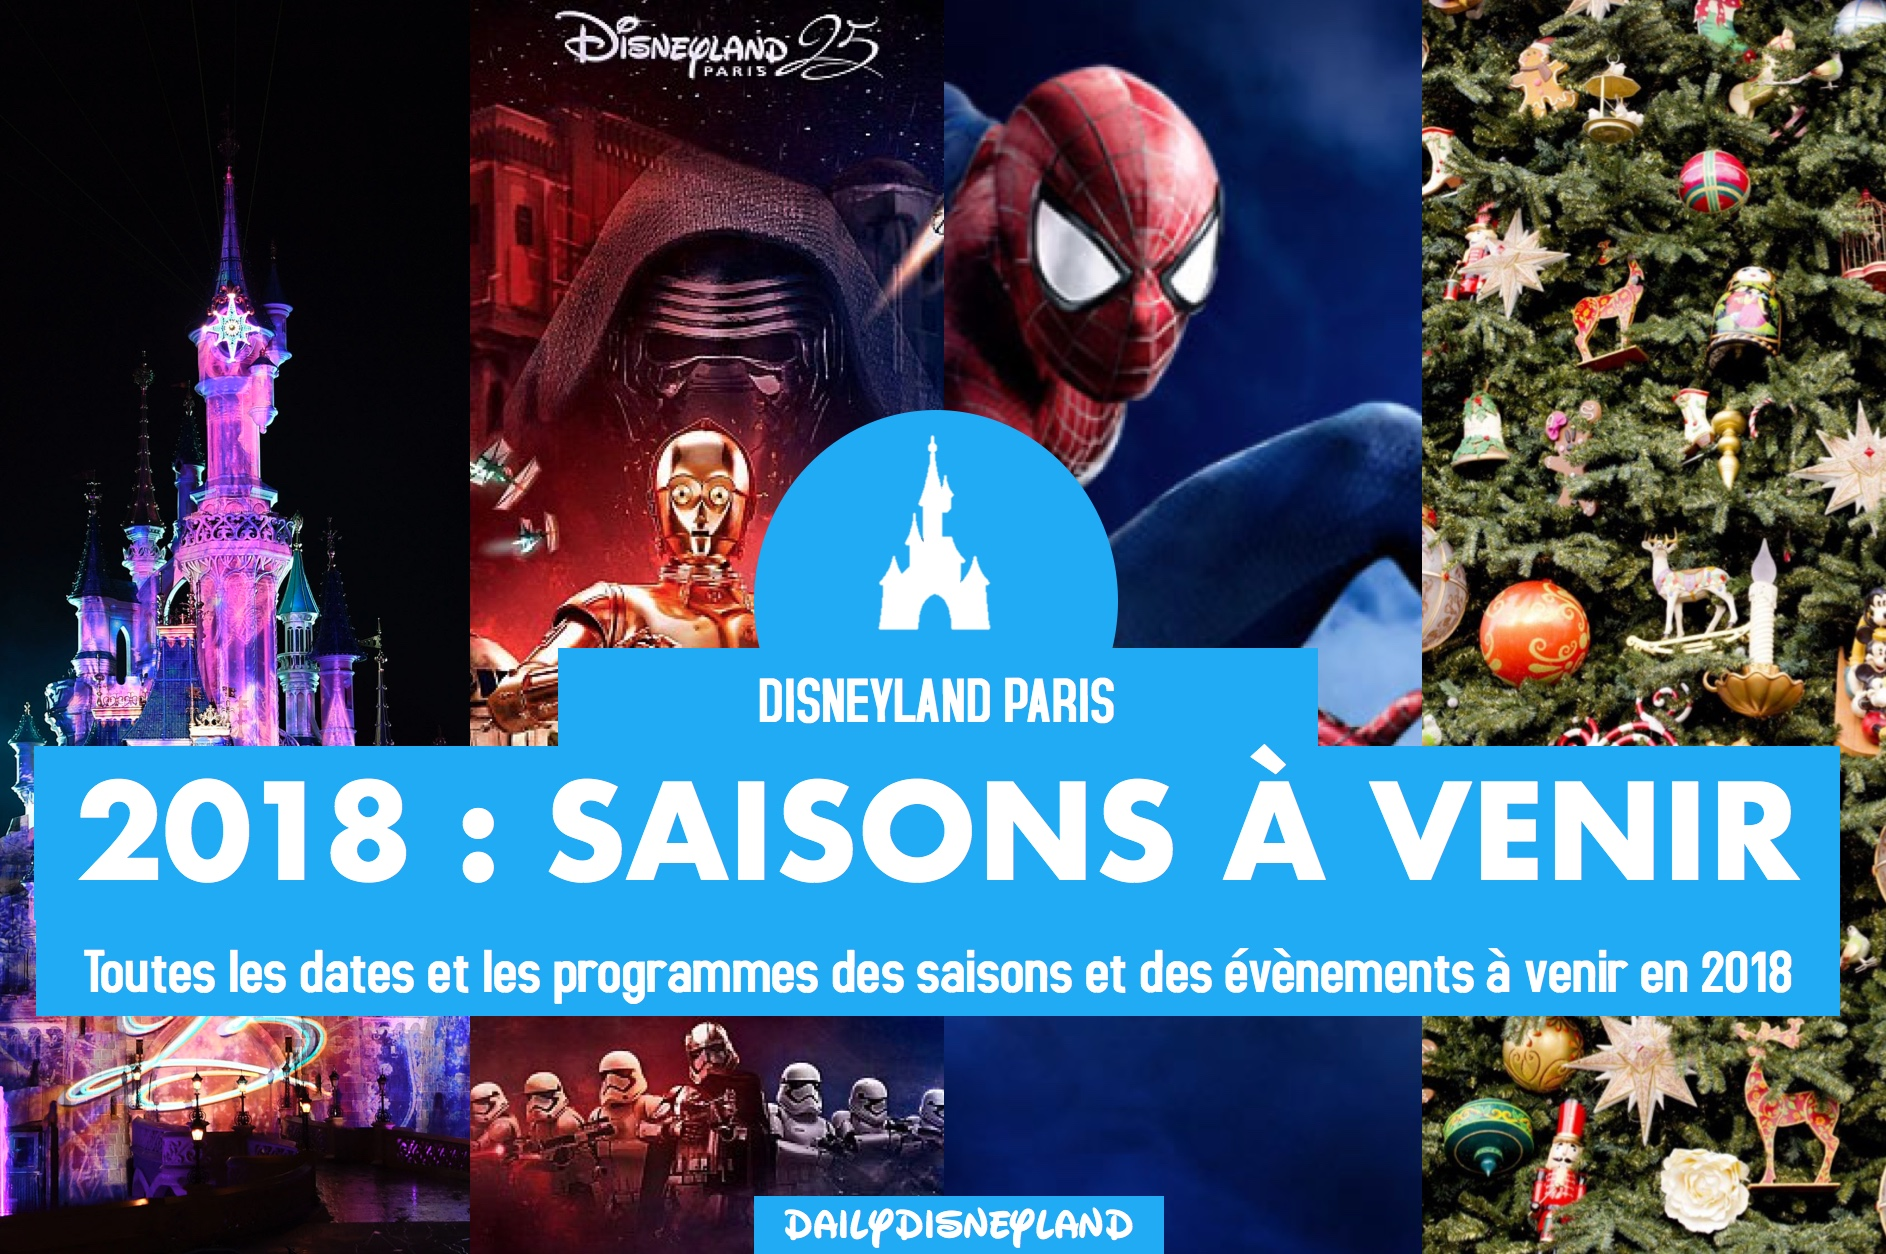 decorations noel disney 2018 Toutes les saisons à venir en 2018 à Disneyland Paris : dates  decorations noel disney 2018